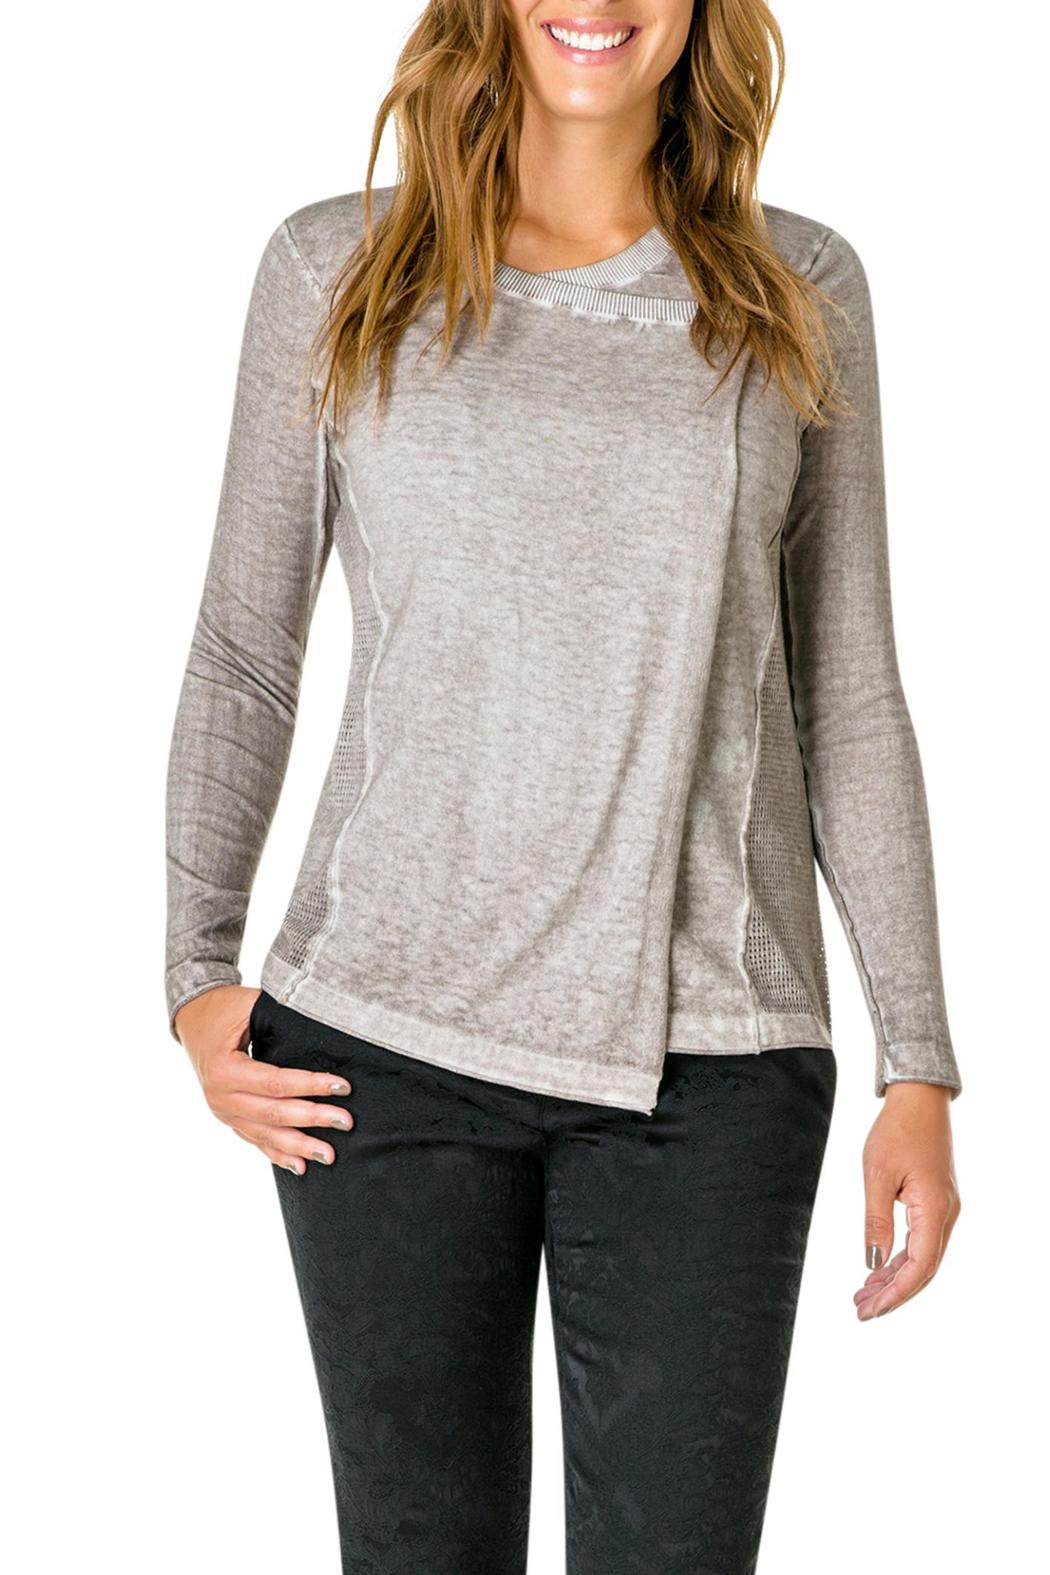 Yest Shoulder Button Sweater from Washington by Gracie's — Shoptiques